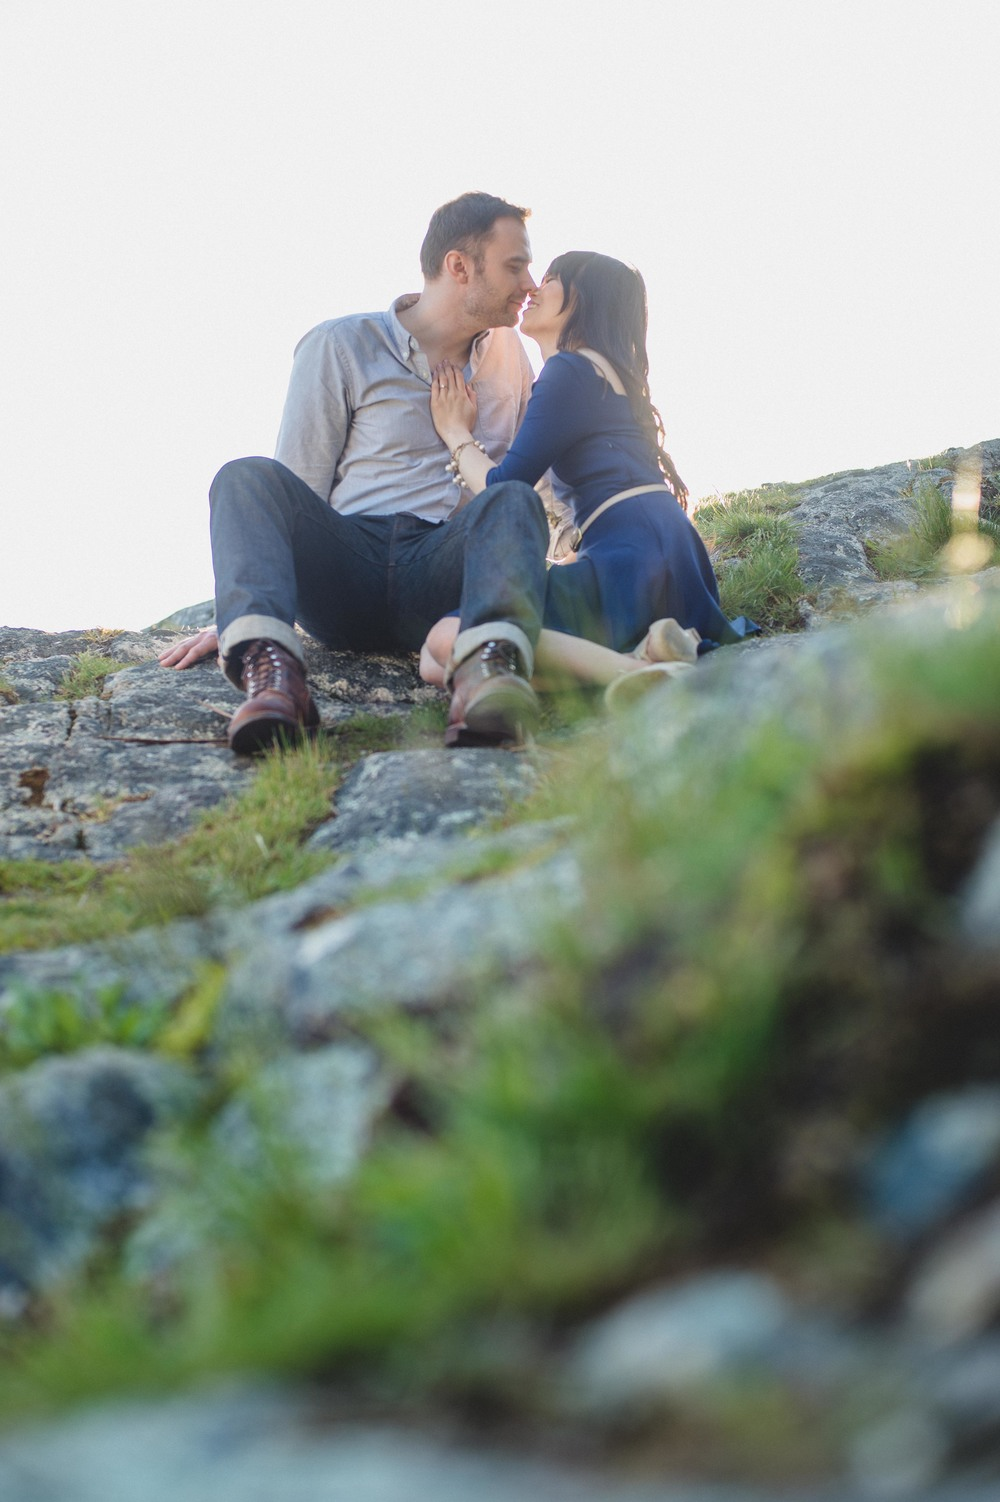 Vaccouver Lighthouse park engagement photography Edward Lai Photography-21.jpg